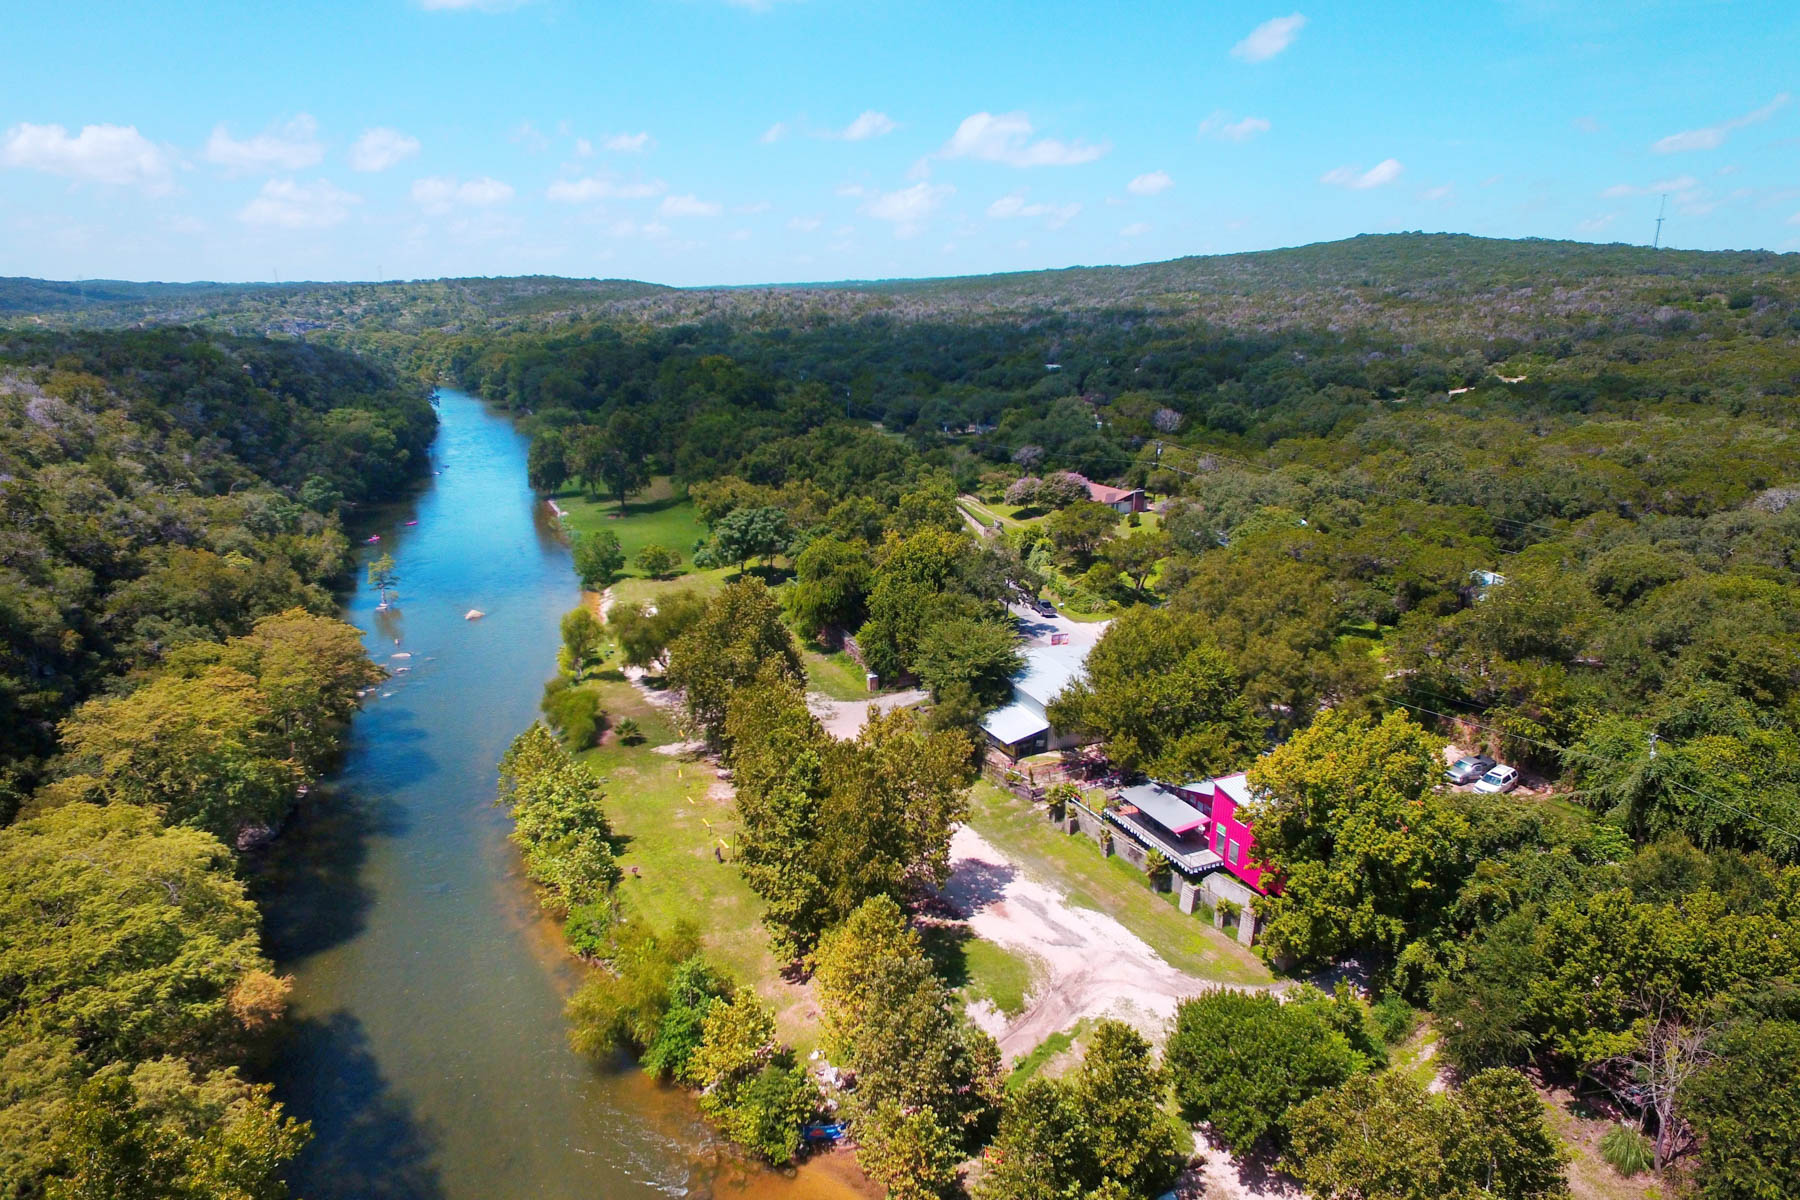 Commercial for Sale at Thriving Gudalupe Riverfront Business 7296 River Rd New Braunfels, Texas 78130 United States